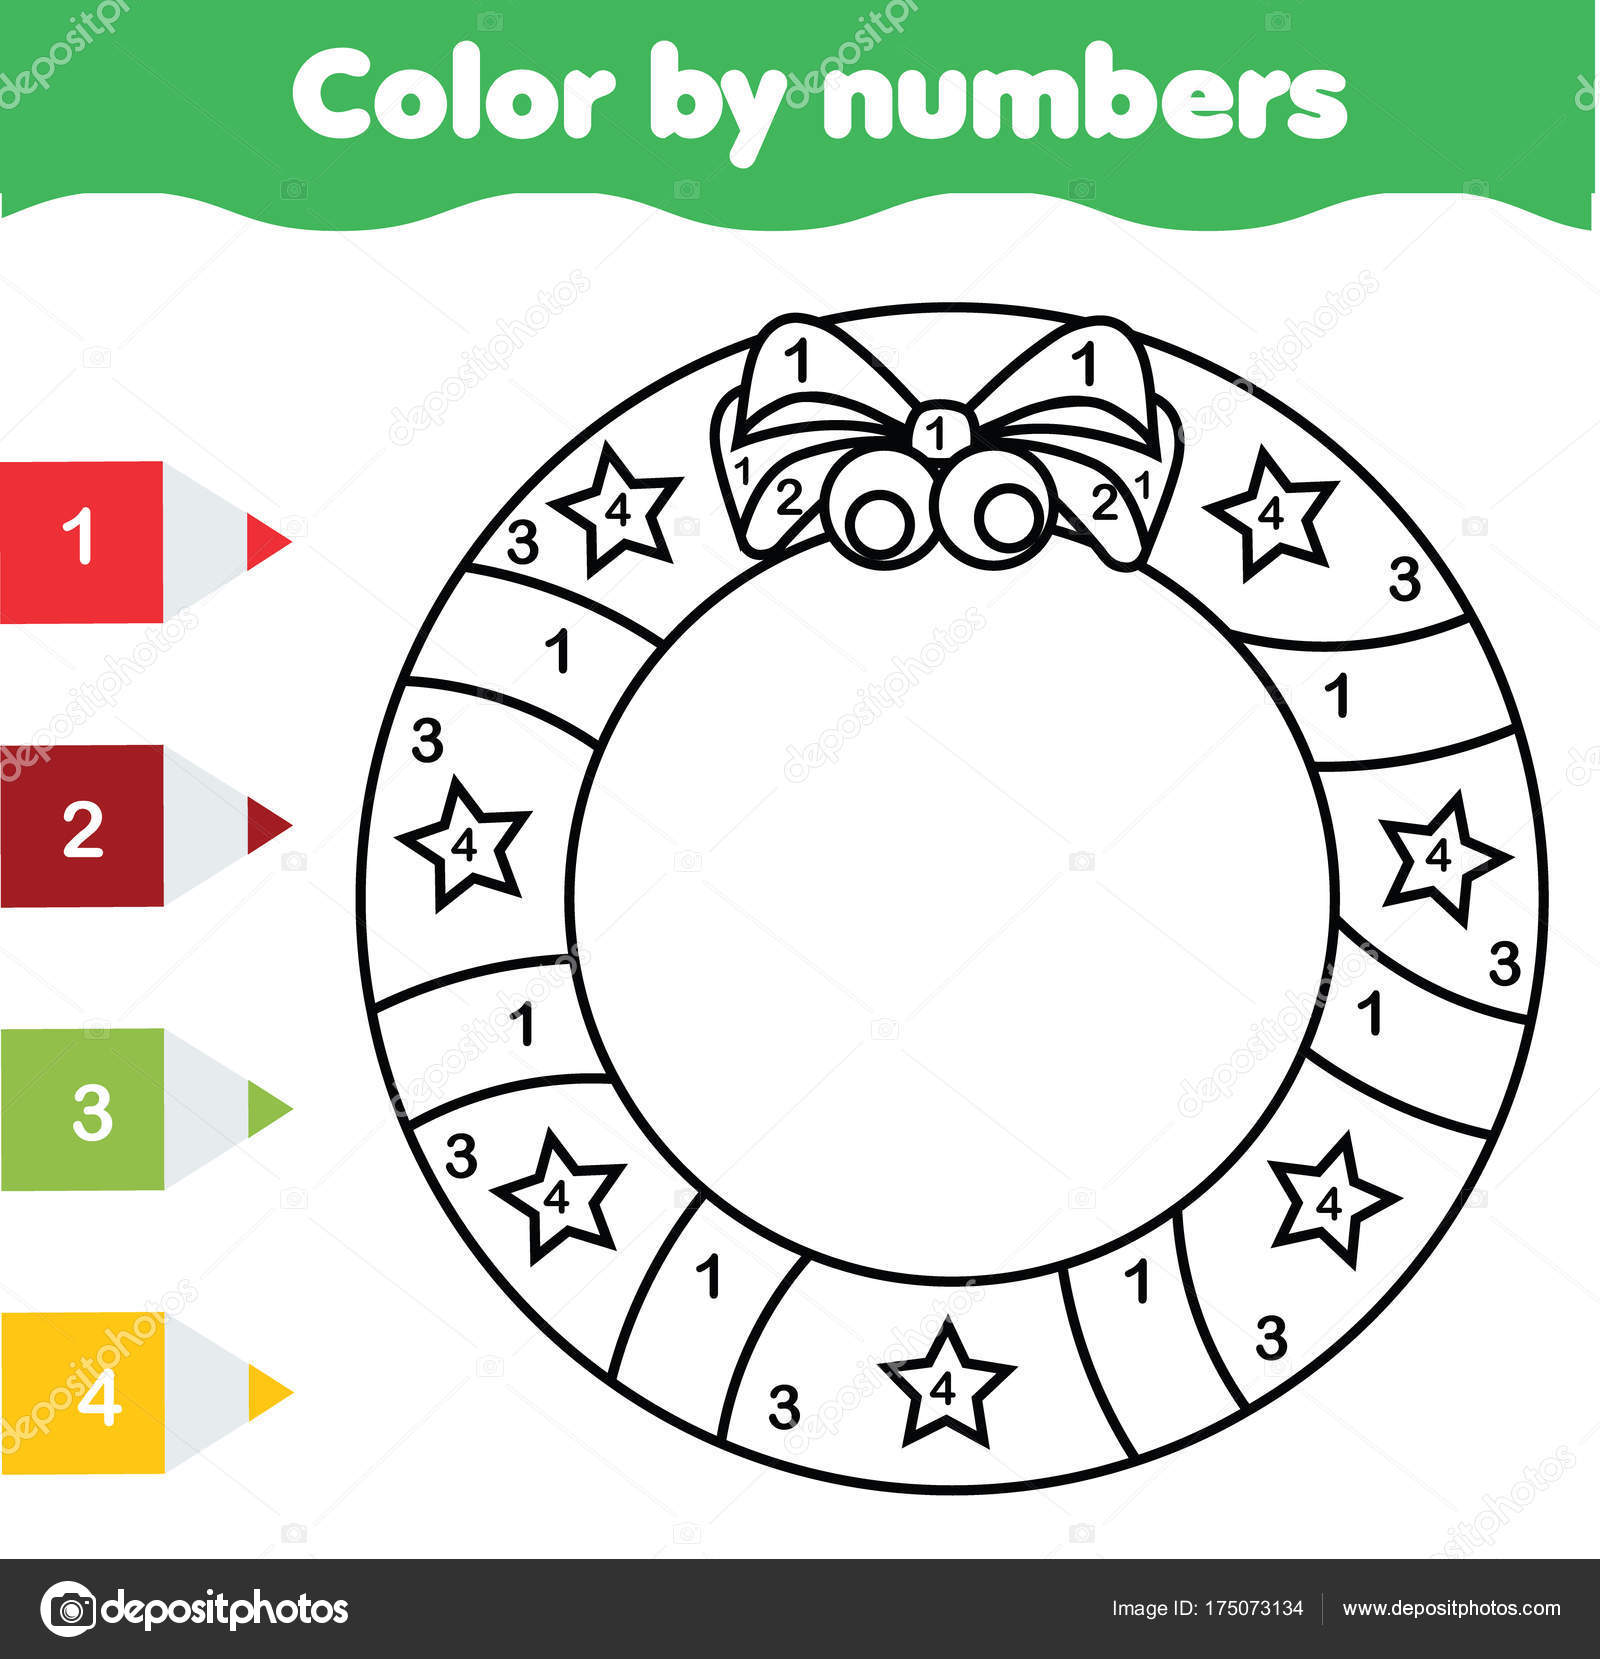 photograph regarding Christmas Numbers Printable named Young children enlightening activity. Coloring website page with Xmas